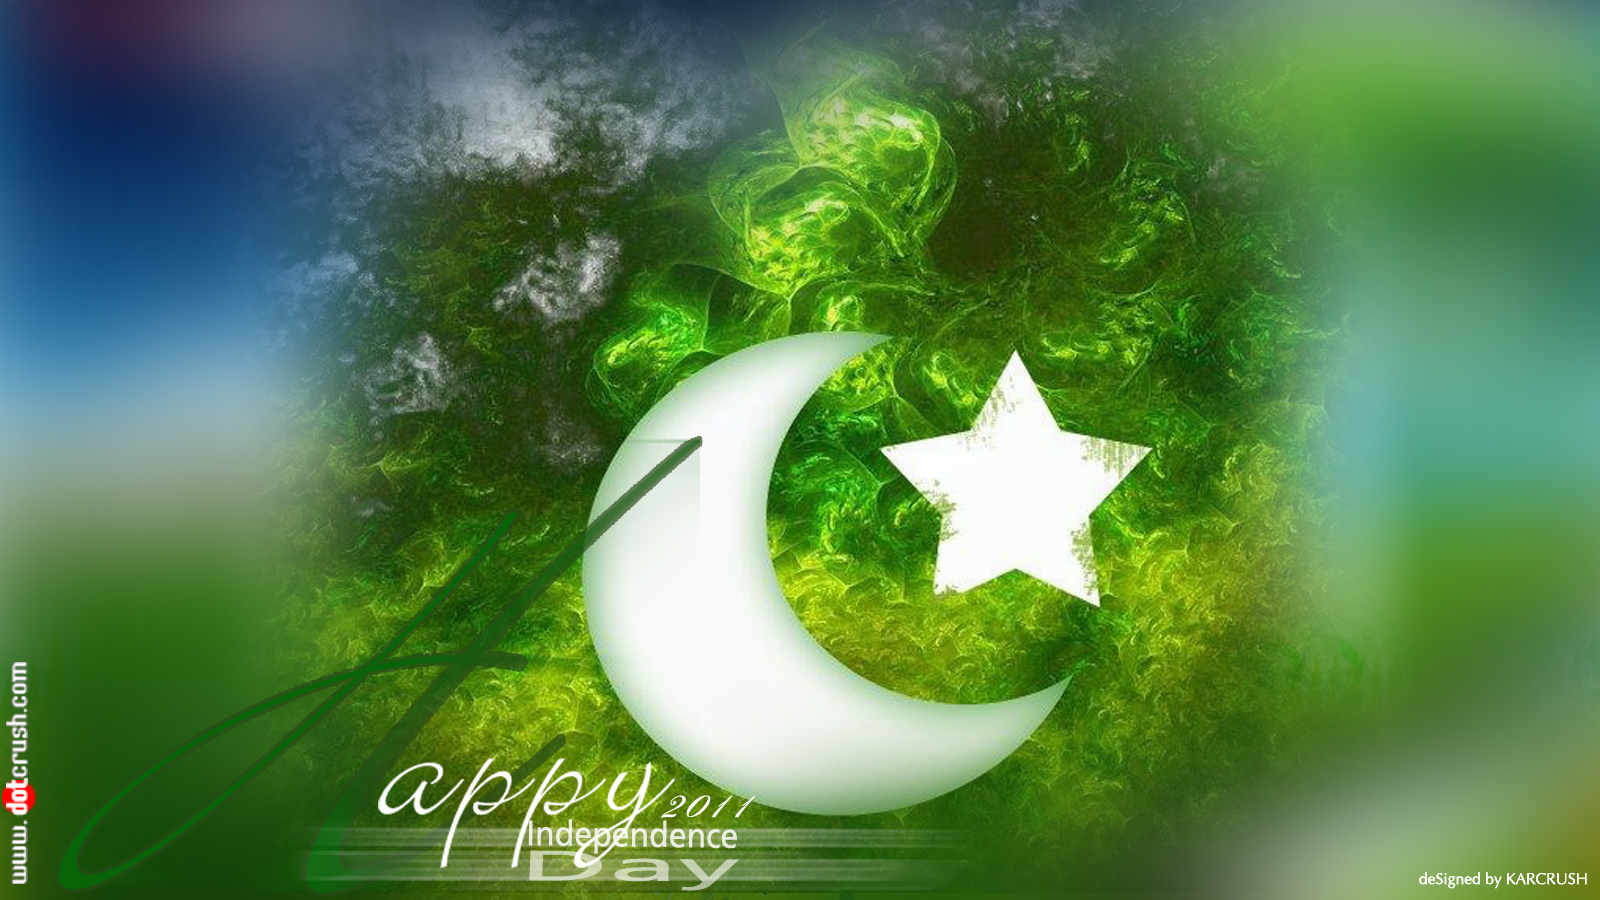 http://4.bp.blogspot.com/-guoISnjnW4o/TkTfDg8W0BI/AAAAAAAAAuI/jdcWuJ_tg7Y/s1600/pakistan-independece-day-14-august-2011-backgrounds-wallpapers-14.jpg